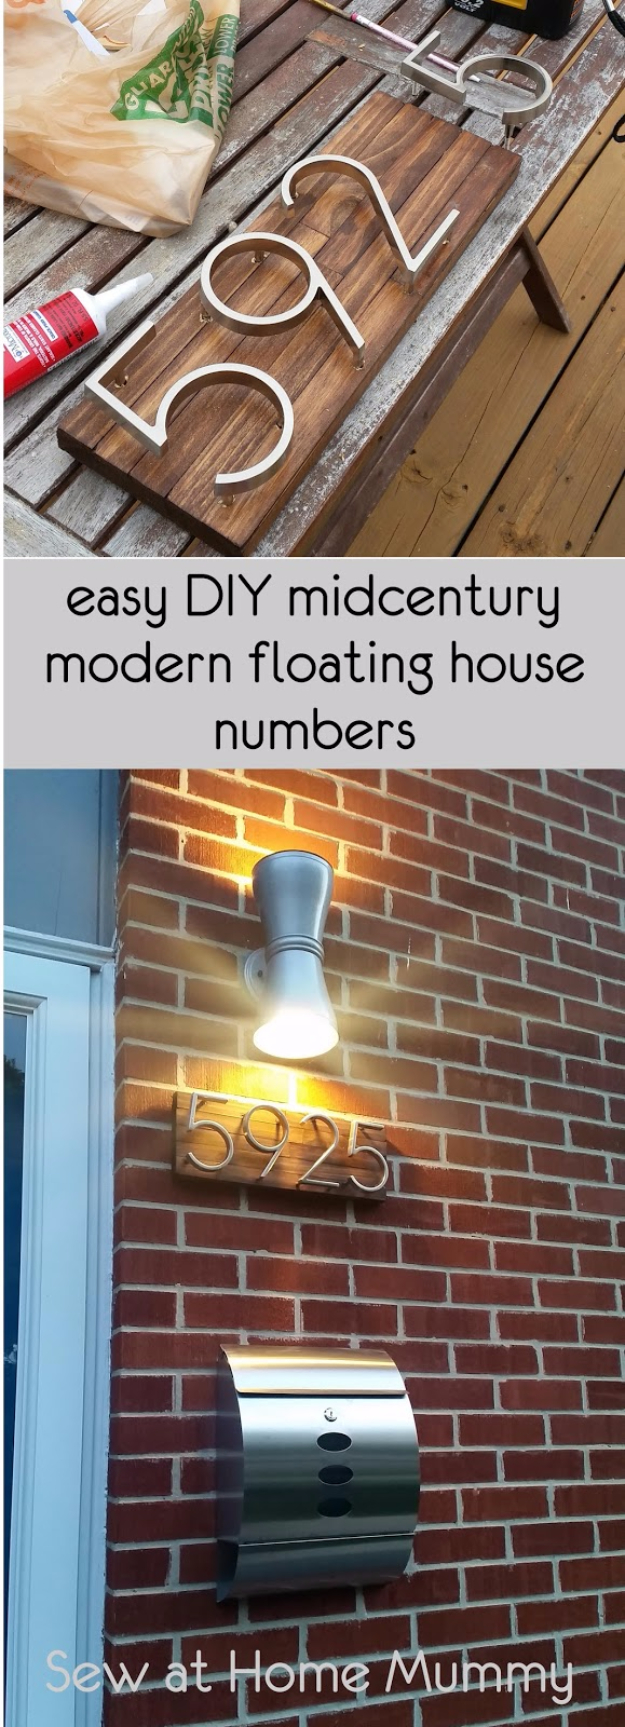 Creative Ways to Increase Curb Appeal on A Budget - Mid Century Modern House Numbers - Cheap and Easy Ideas for Upgrading Your Front Porch, Landscaping, Driveways, Garage Doors, Brick and Home Exteriors. Add Window Boxes, House Numbers